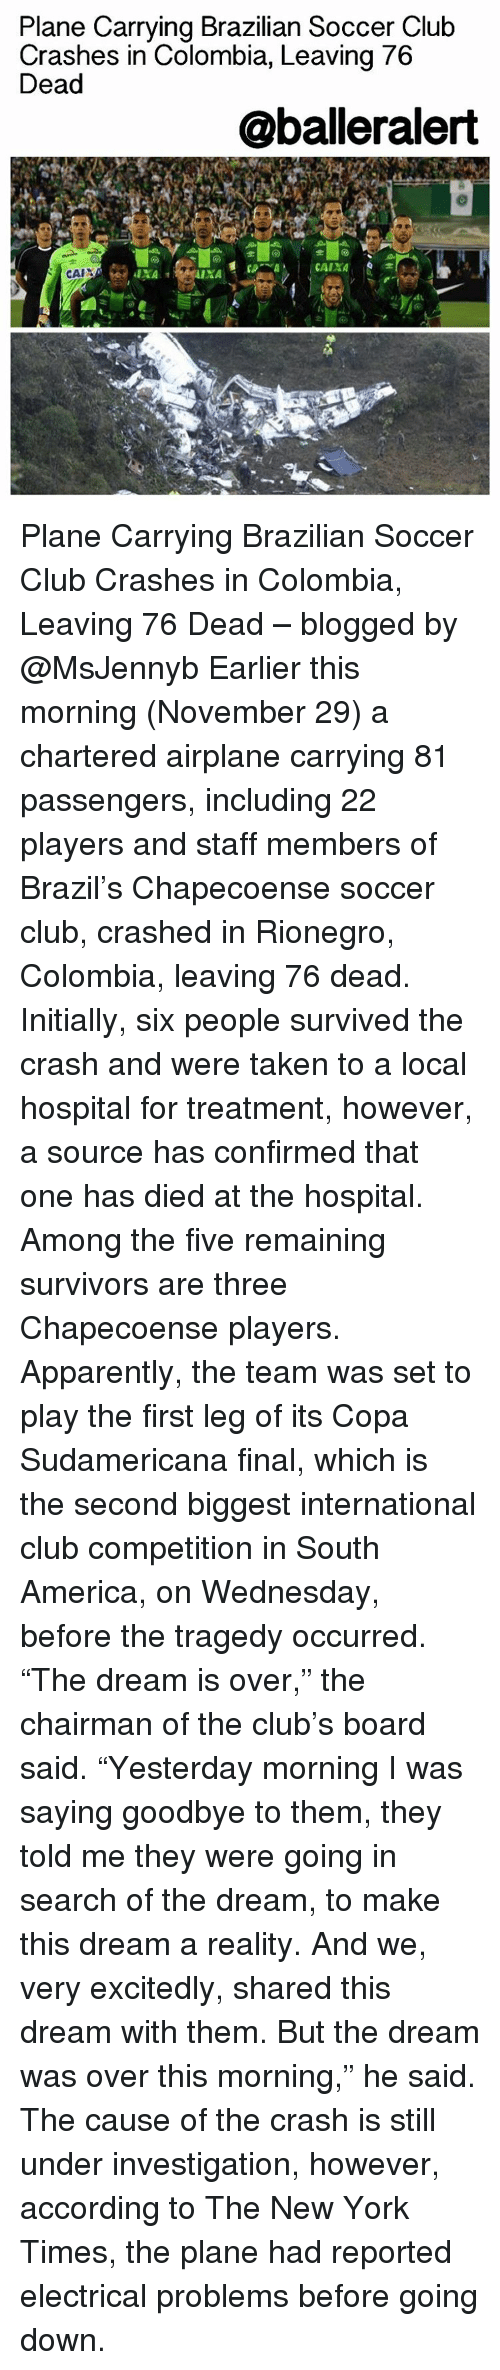 "Apparently, Club, and Memes: Plane Carrying Brazilian Soccer Club  Crashes in Colombia, Leaving 76  Dead  @balleralert  CAIXA  CAIN Plane Carrying Brazilian Soccer Club Crashes in Colombia, Leaving 76 Dead – blogged by @MsJennyb Earlier this morning (November 29) a chartered airplane carrying 81 passengers, including 22 players and staff members of Brazil's Chapecoense soccer club, crashed in Rionegro, Colombia, leaving 76 dead. Initially, six people survived the crash and were taken to a local hospital for treatment, however, a source has confirmed that one has died at the hospital. Among the five remaining survivors are three Chapecoense players. Apparently, the team was set to play the first leg of its Copa Sudamericana final, which is the second biggest international club competition in South America, on Wednesday, before the tragedy occurred. ""The dream is over,"" the chairman of the club's board said. ""Yesterday morning I was saying goodbye to them, they told me they were going in search of the dream, to make this dream a reality. And we, very excitedly, shared this dream with them. But the dream was over this morning,"" he said. The cause of the crash is still under investigation, however, according to The New York Times, the plane had reported electrical problems before going down."